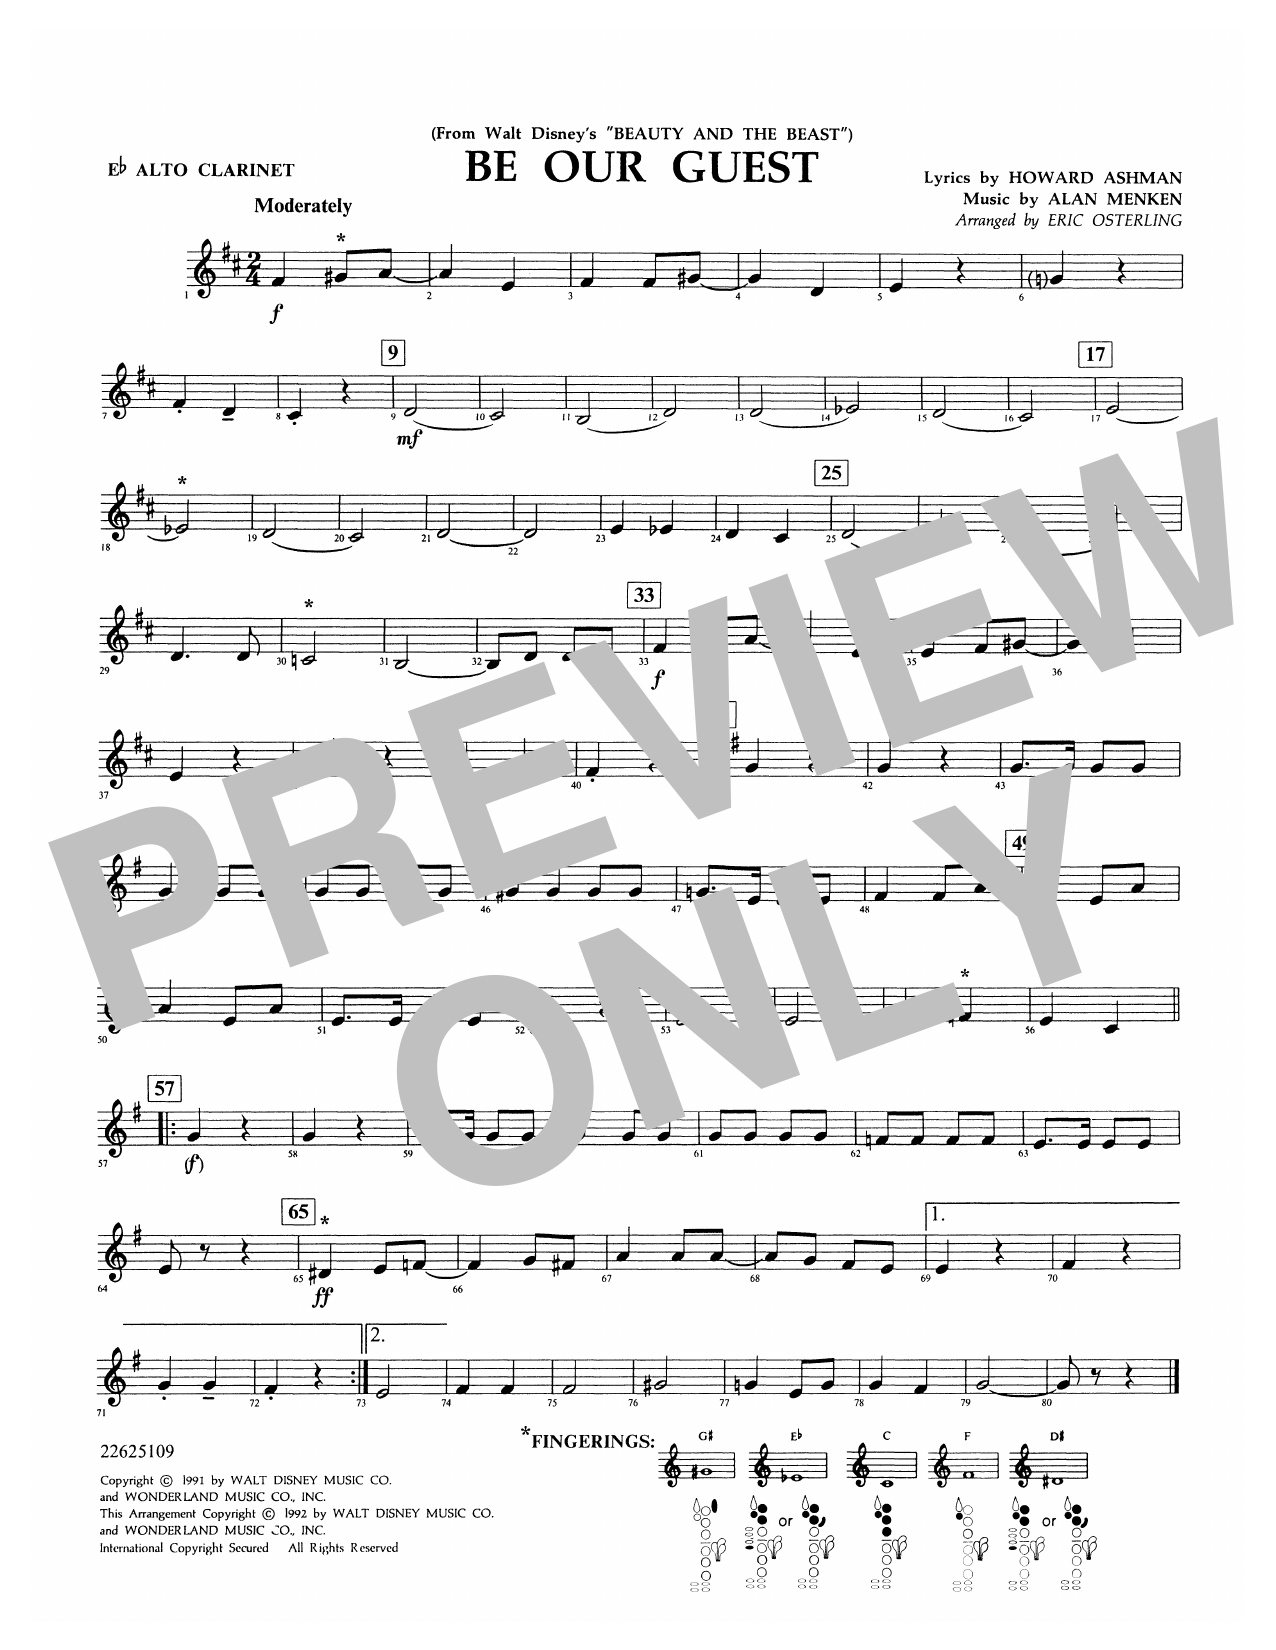 Be Our Guest (from Beauty And The Beast) (arr. Eric Osterling) - Eb Alto Clarinet Partition Digitale